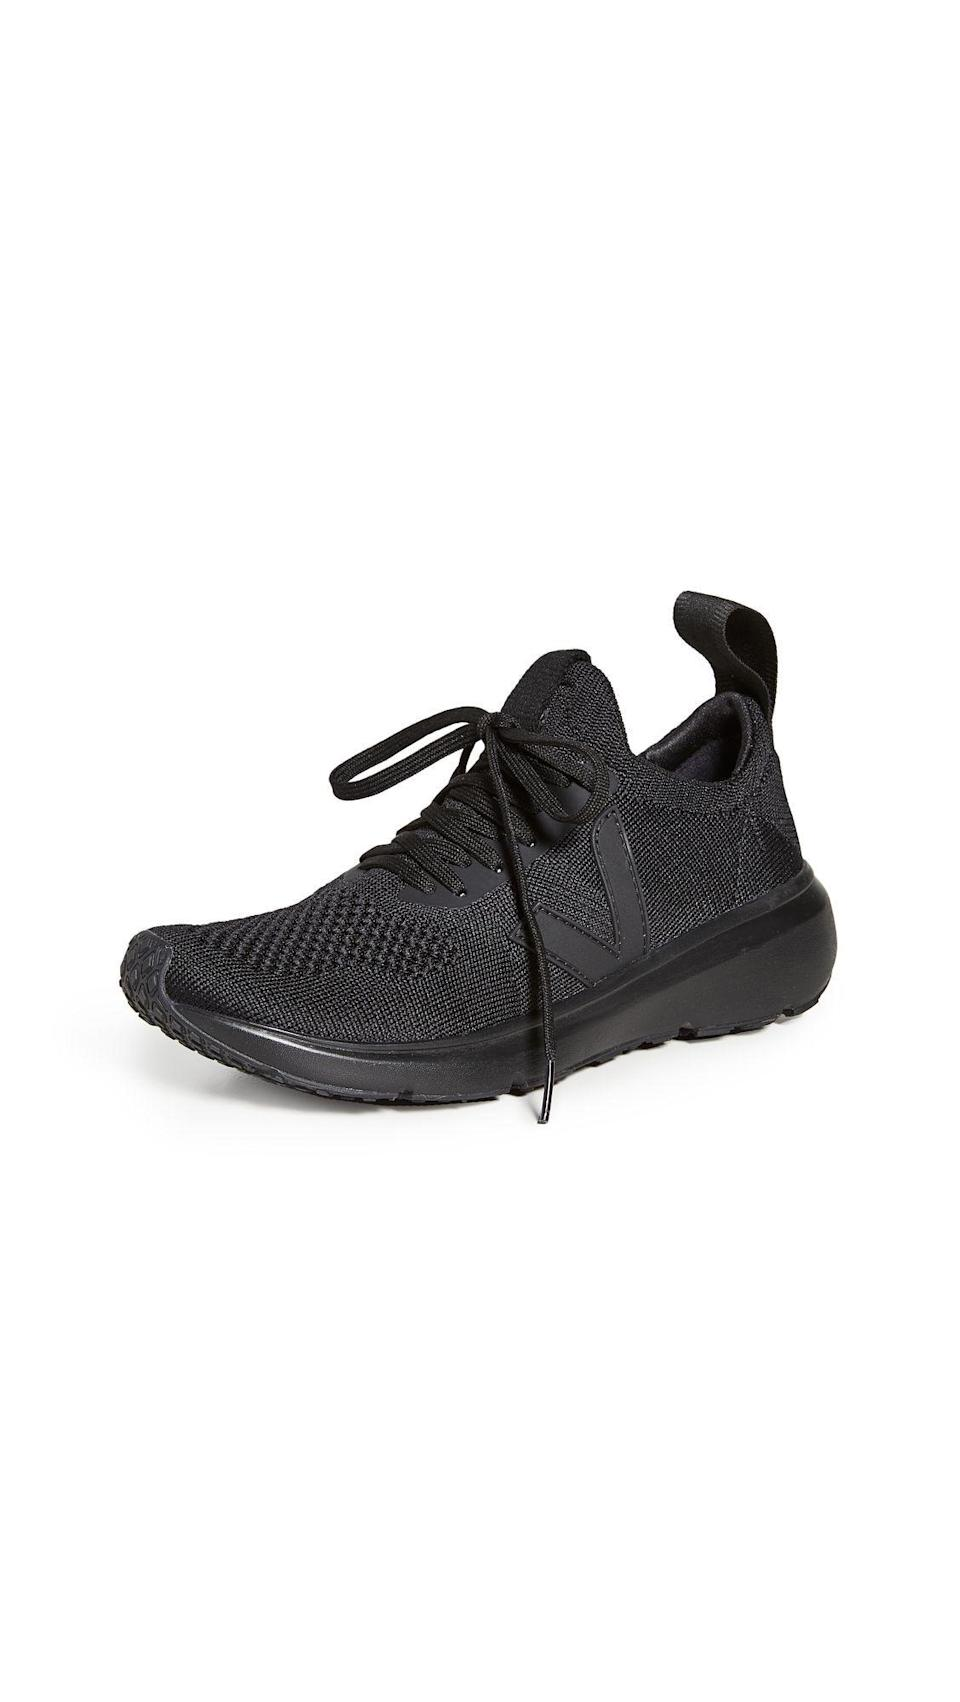 """<p><strong>Veja</strong></p><p>shopbop.com</p><p><a href=""""https://go.redirectingat.com?id=74968X1596630&url=https%3A%2F%2Fwww.shopbop.com%2Frick-owens-running-style-sneakers%2Fvp%2Fv%3D1%2F1501647224.htm&sref=https%3A%2F%2Fwww.townandcountrymag.com%2Fstyle%2Ffashion-trends%2Fg36107567%2Fshopbop-spring-sale%2F"""" rel=""""nofollow noopener"""" target=""""_blank"""" data-ylk=""""slk:Shop Now"""" class=""""link rapid-noclick-resp"""">Shop Now</a></p><p><strong><del>$203</del> $173 (15% off)</strong></p><p>Originally $290, these running sneakers from Rick Owens' latest collaboration with fair trade, eco-friendly brand Veja are a splurge you can feel good about. The shoes are made from 45 percent bio-based materials with an L-FOAM cushion made from 50 percent Brazilian natural rubber, and a 3D knit made from recycled plastic bottles. </p>"""